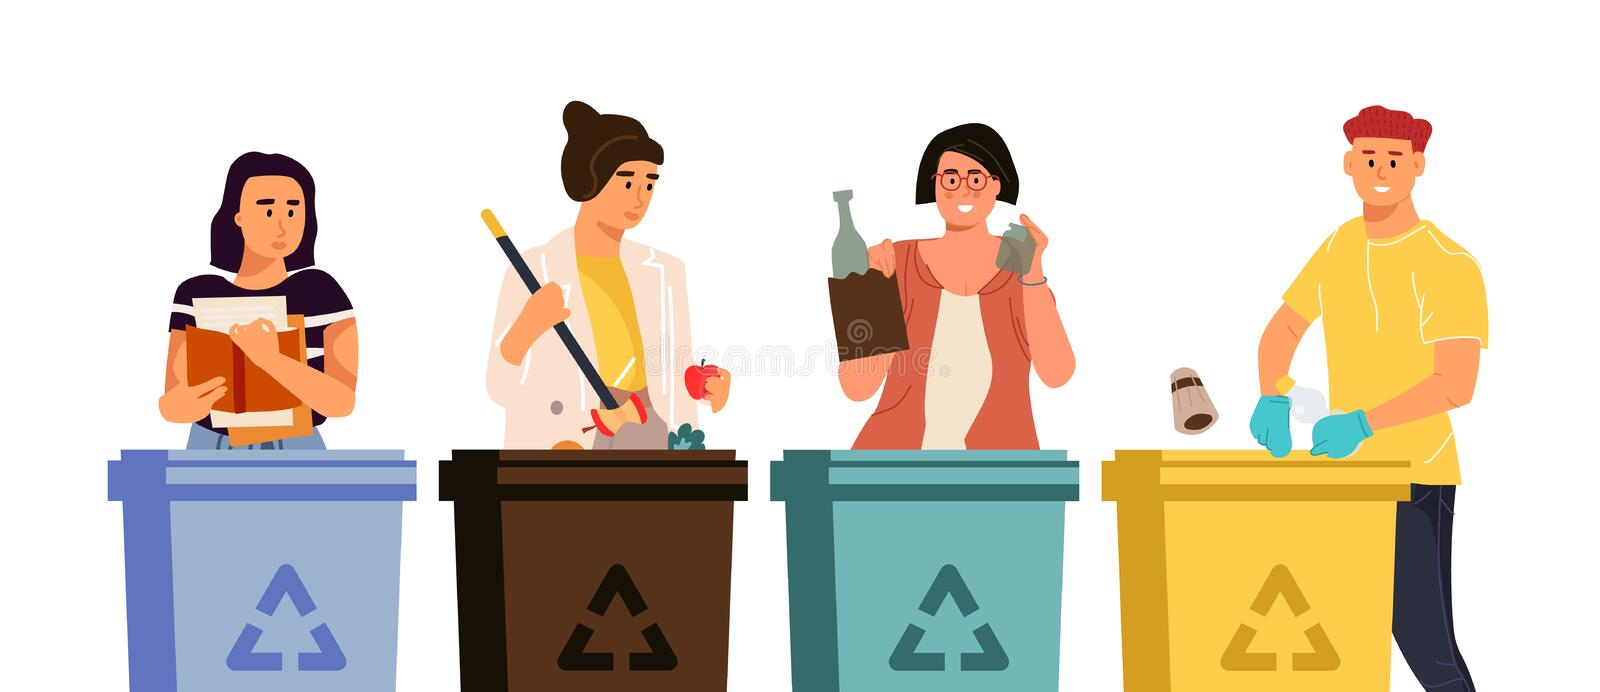 Recycling characters. Cartoon men and women putting trash in different containers, garbage sorting concept. Vector. Illustrations global eco recycling waste royalty free illustration